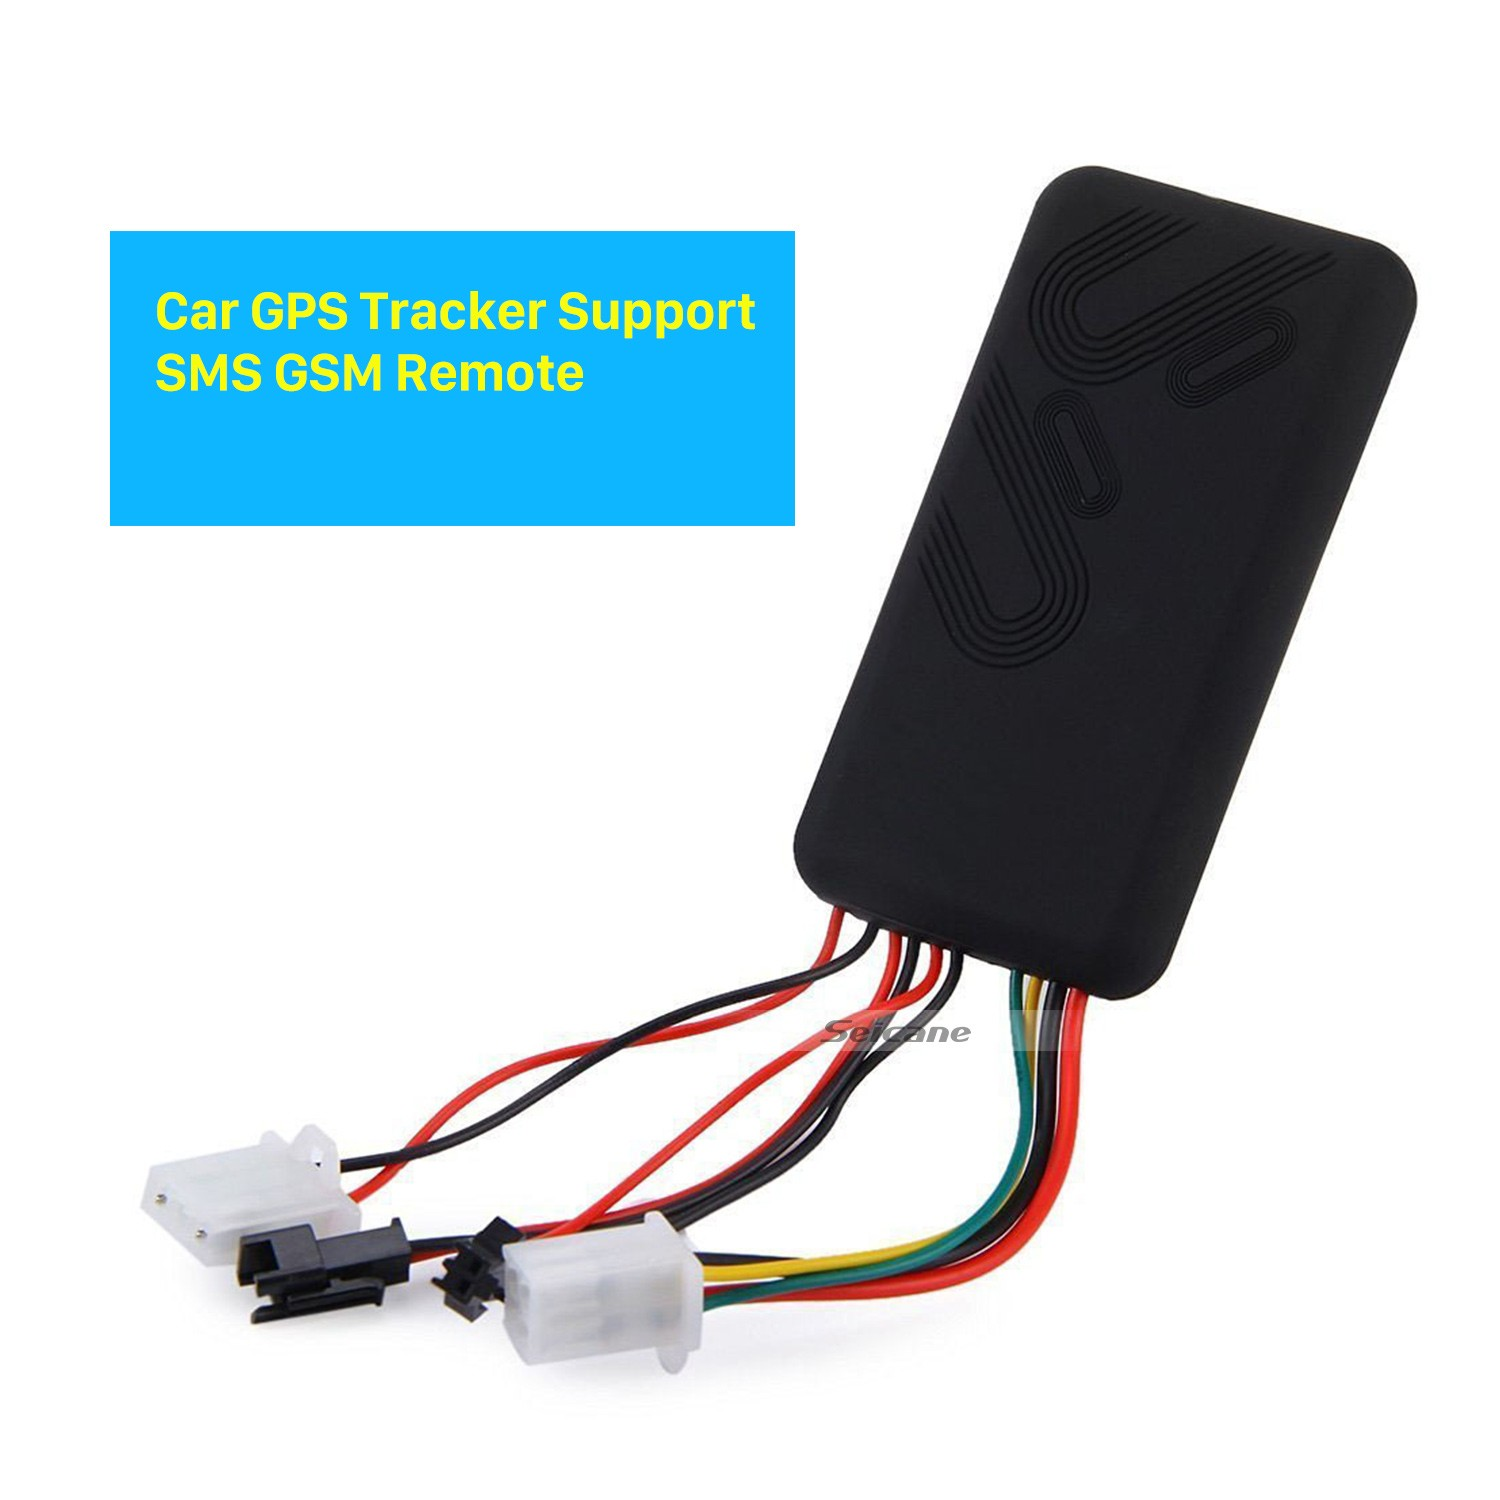 SMS Location Tracker With Ip